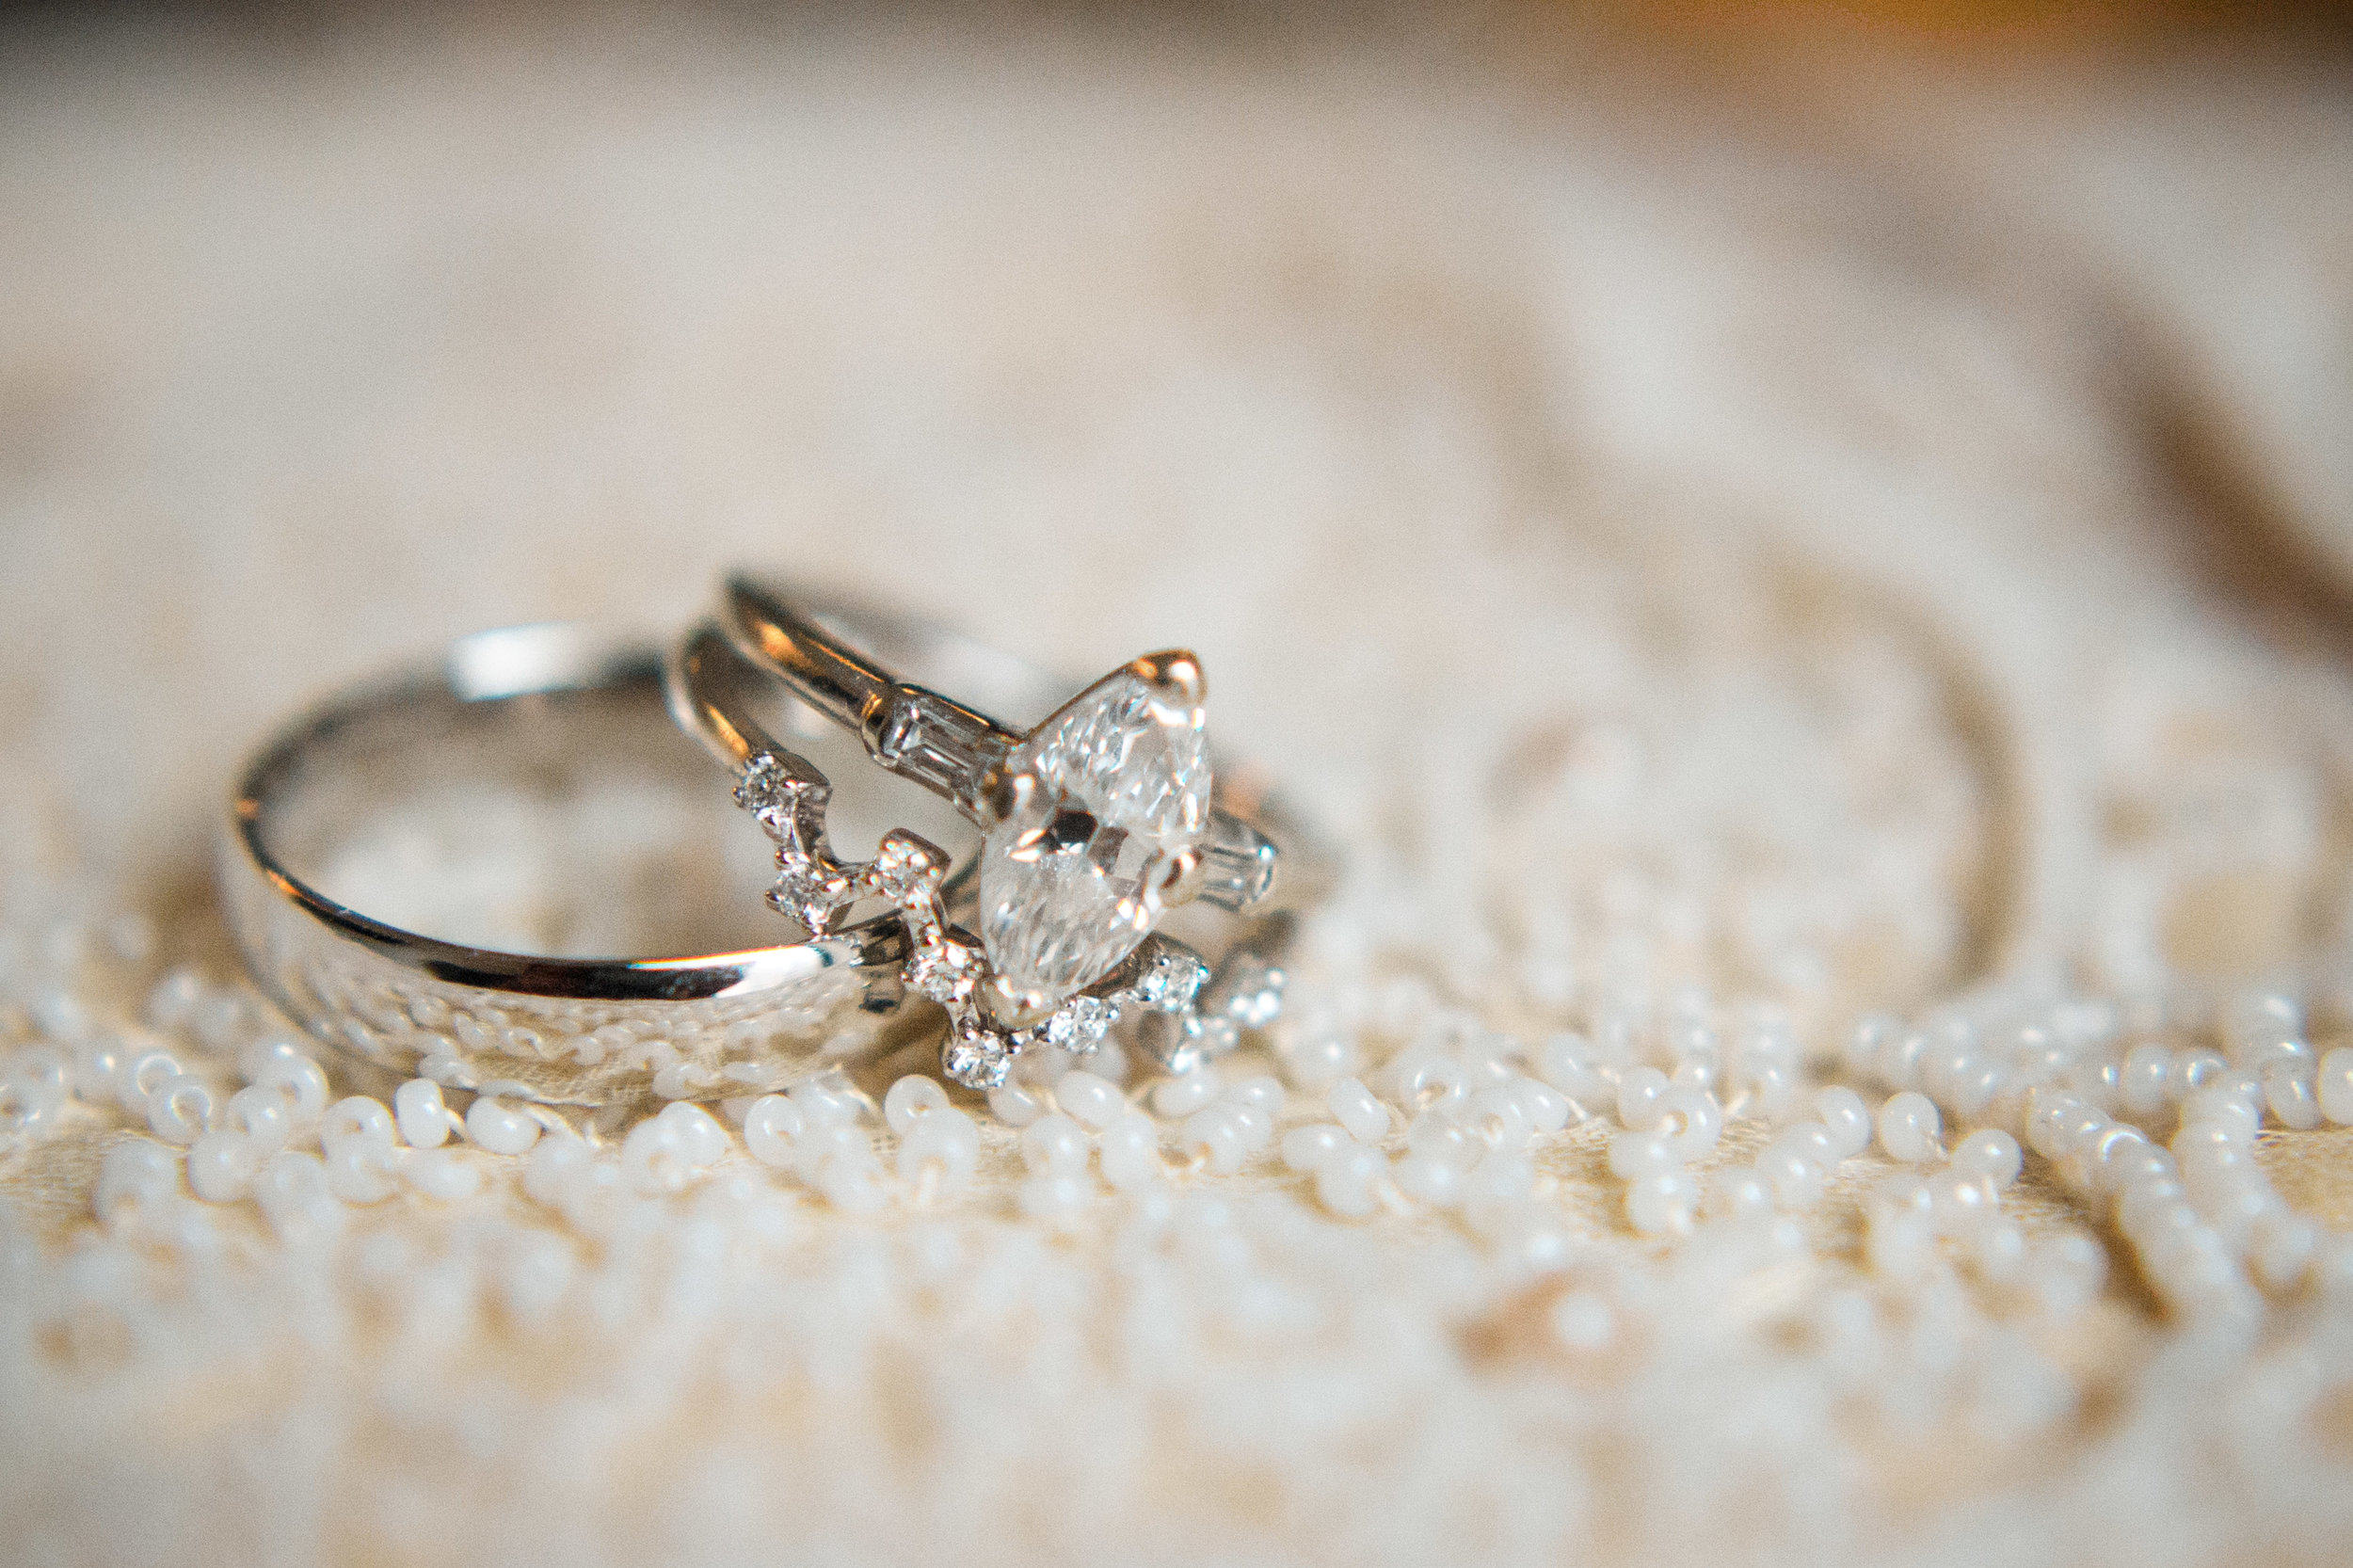 Redbury NY Wedding Ring detail photo.jpg